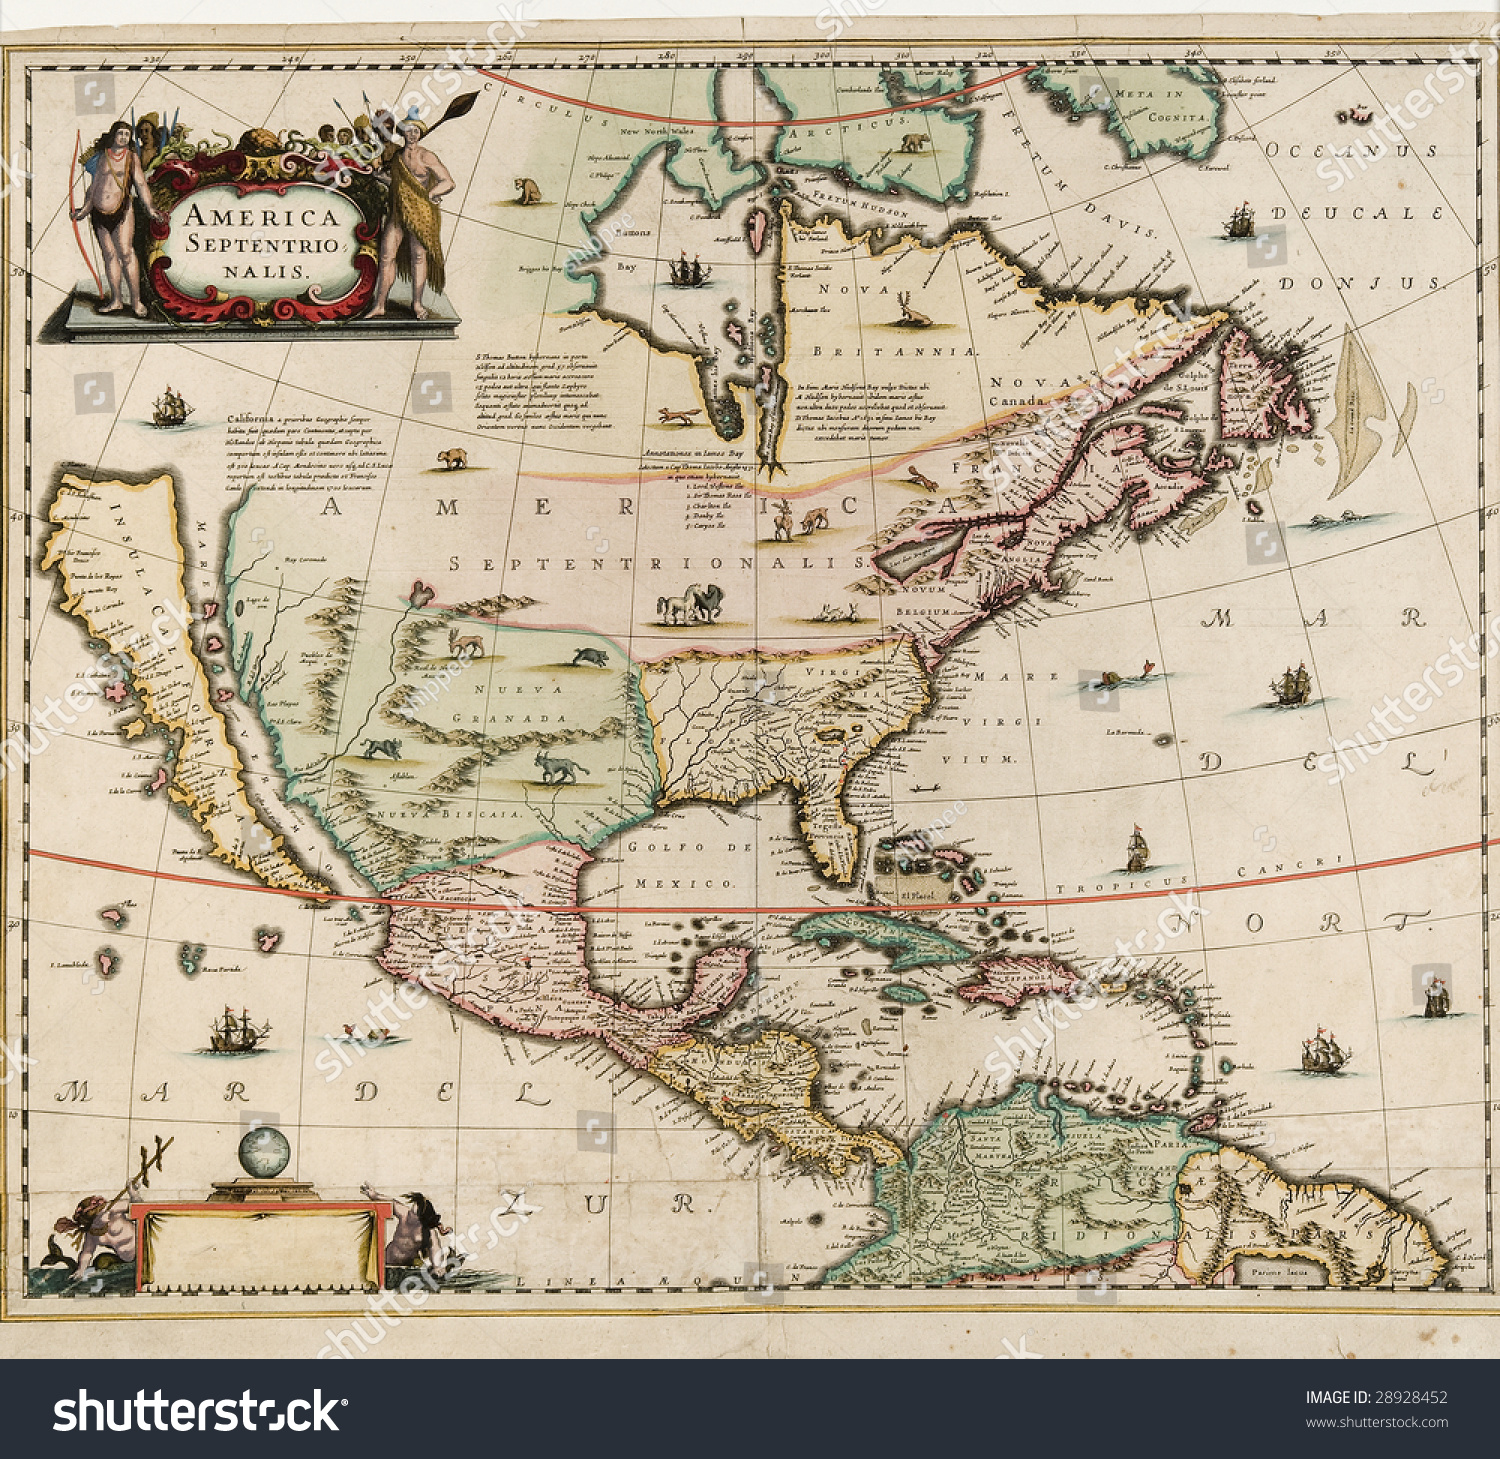 Old North America Map.Old World Map America Septentrio Nalis Stock Photo Edit Now